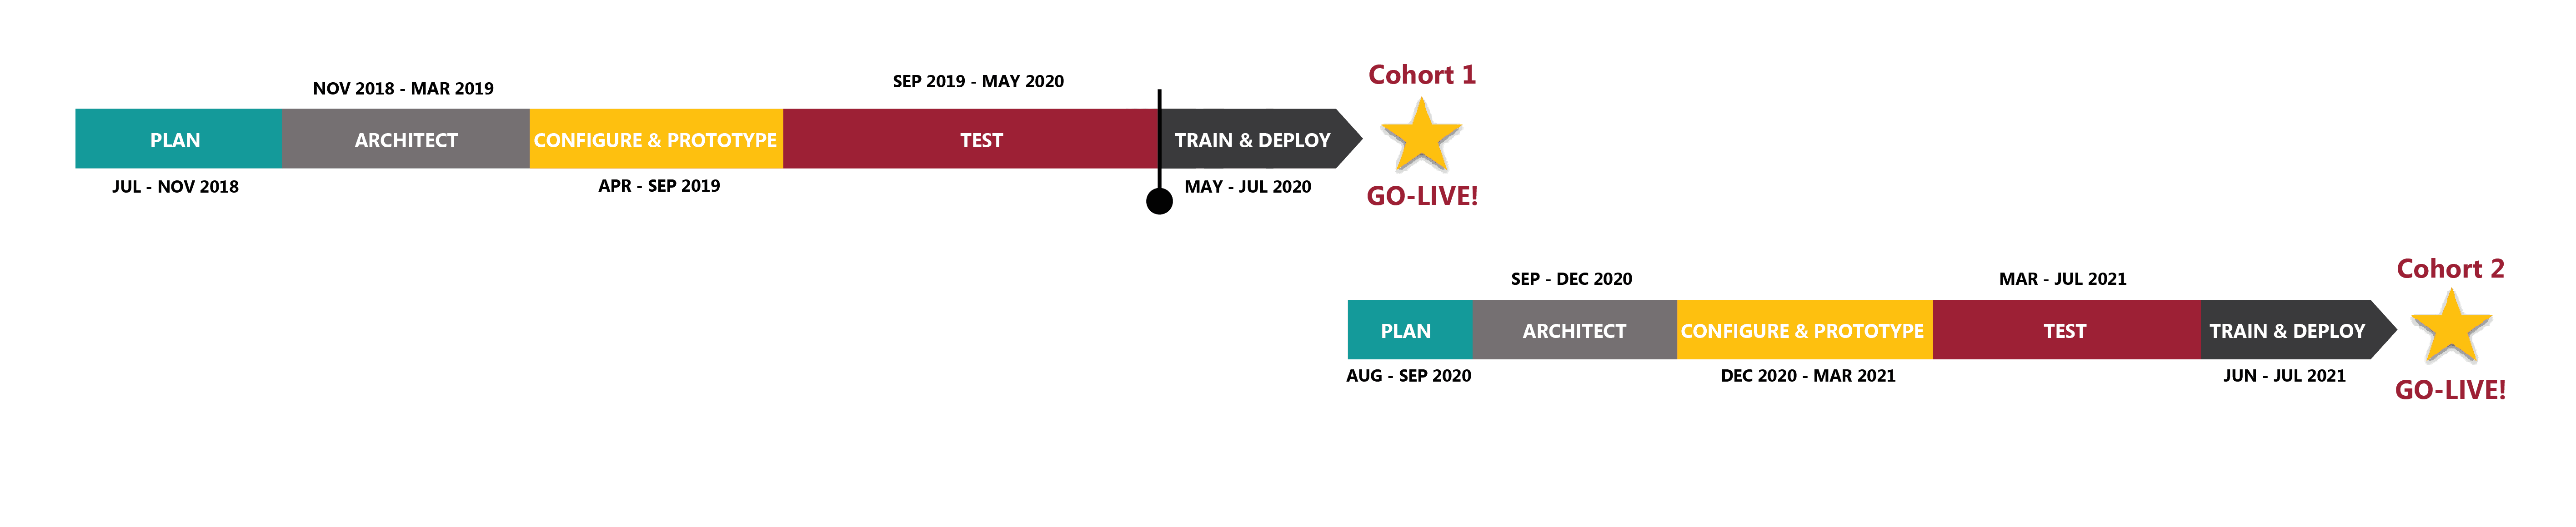 May Timeline